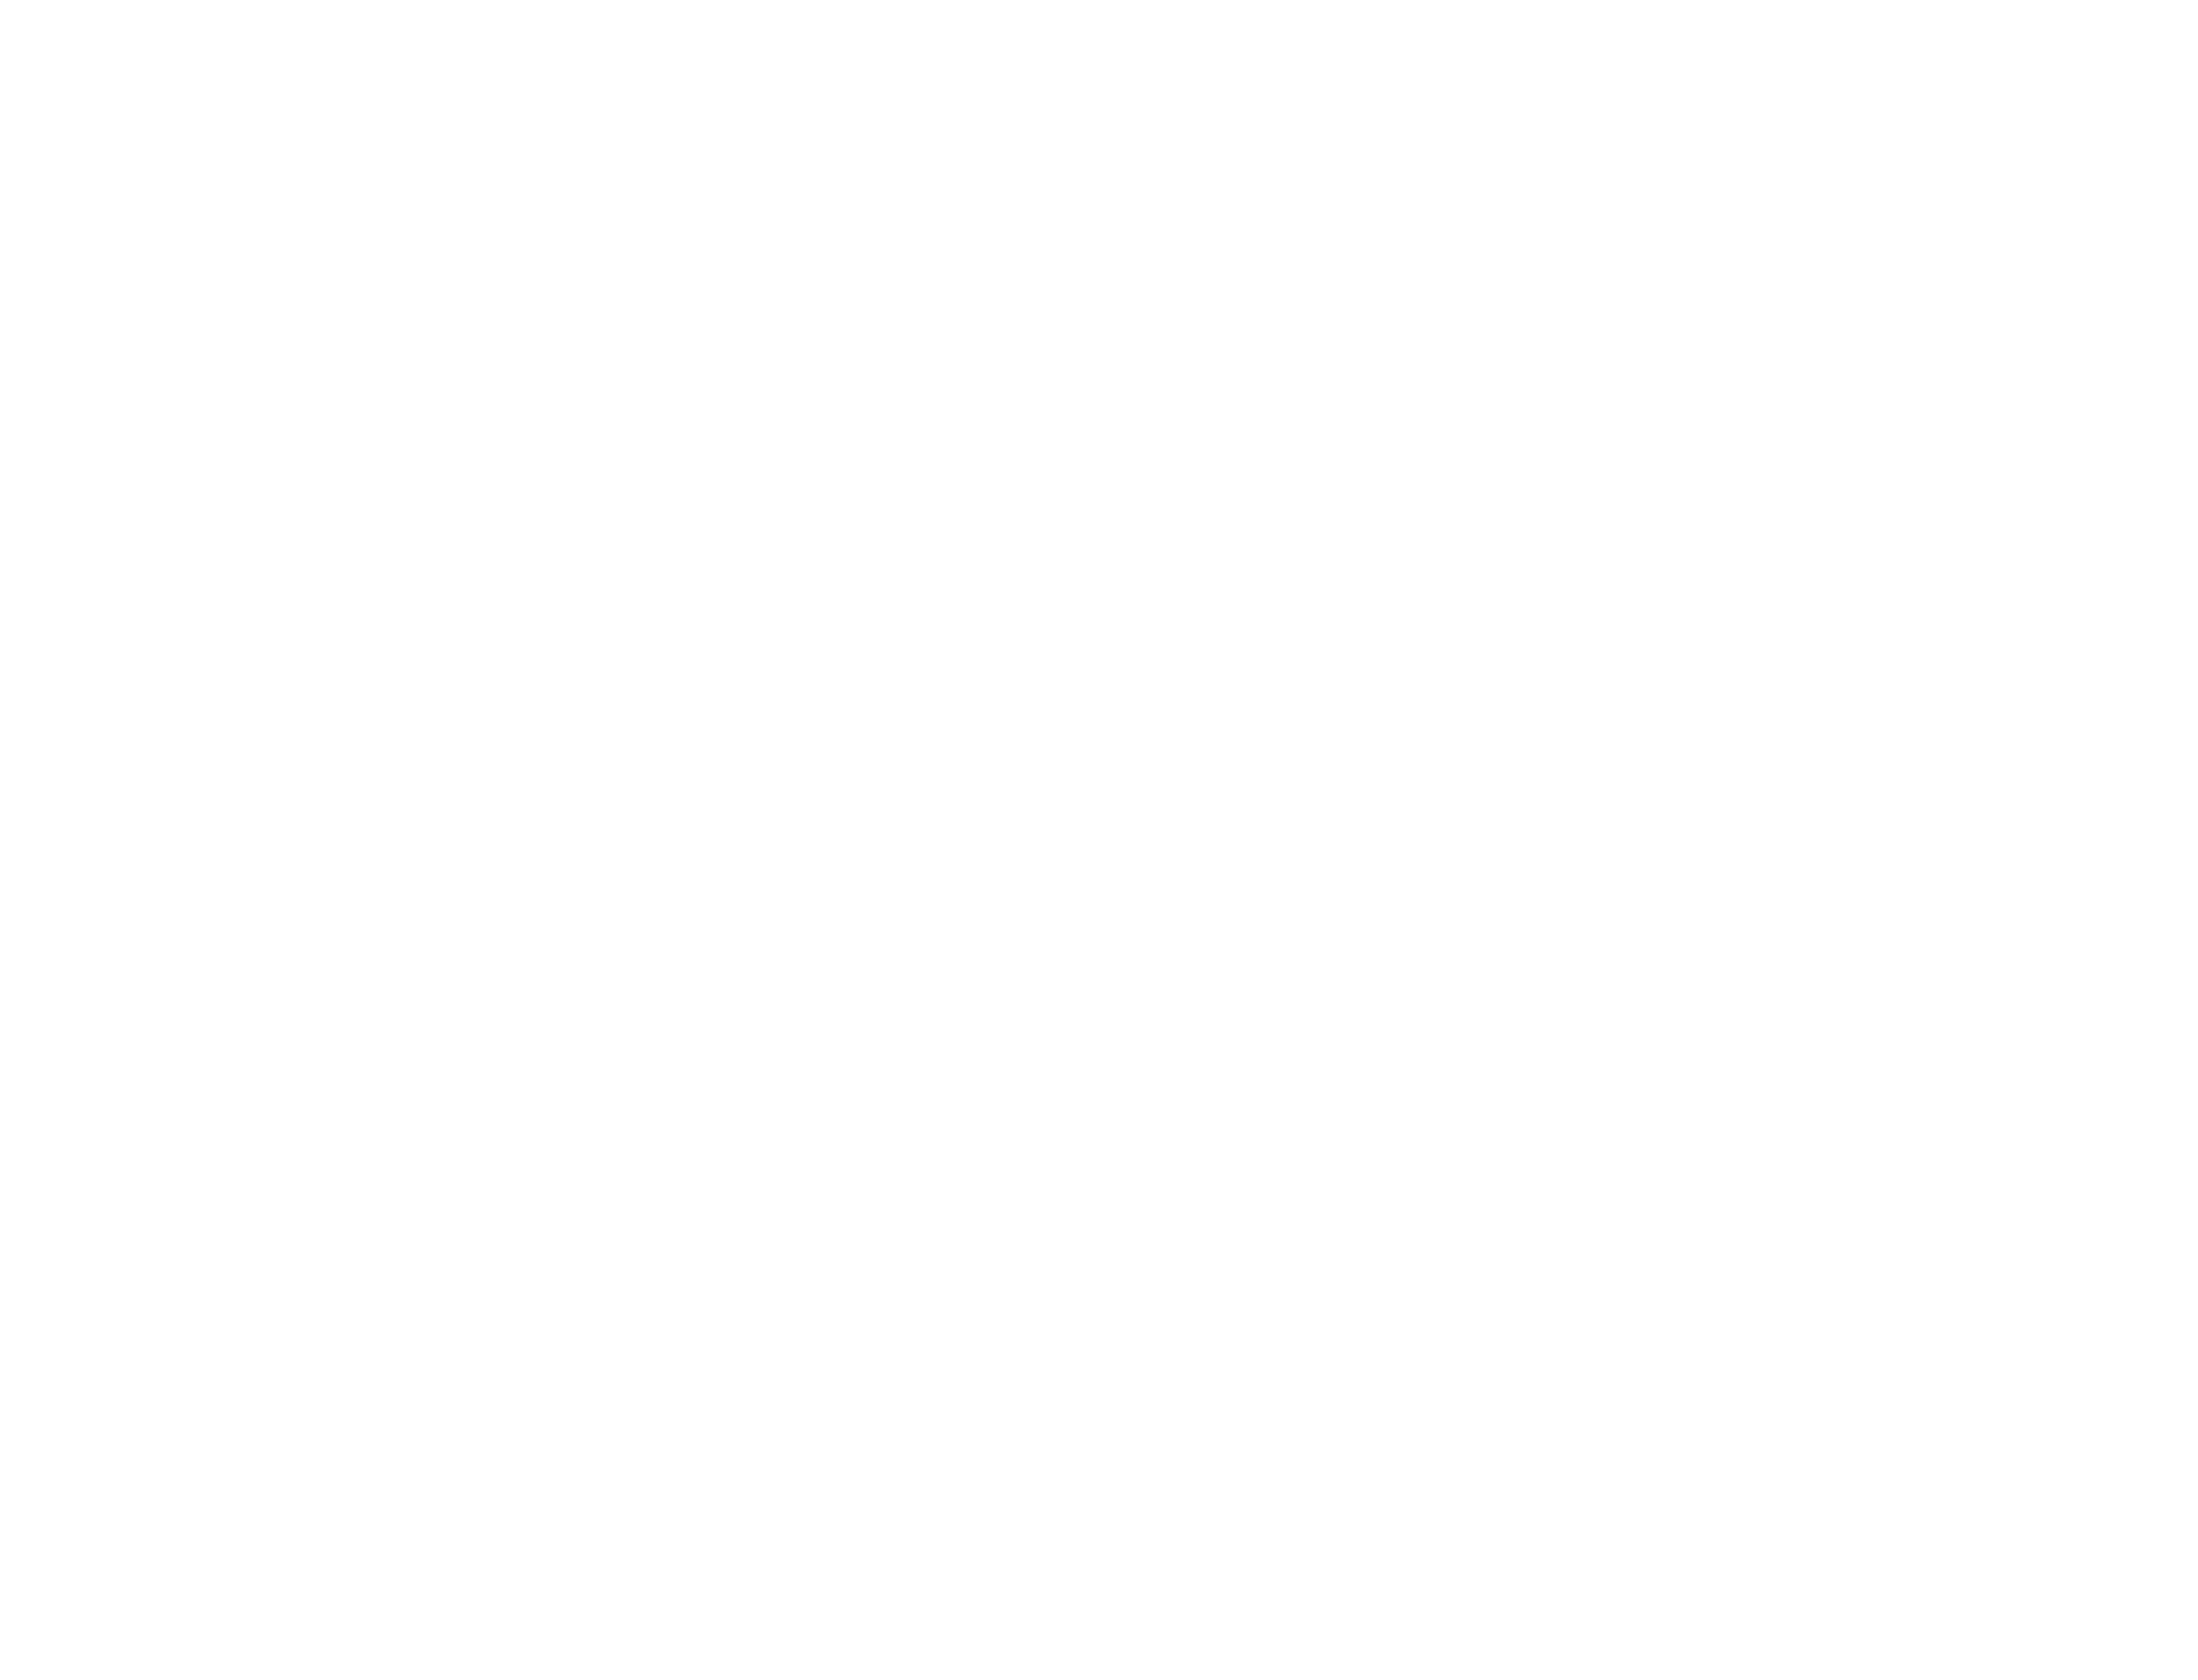 """Maine Campus Icon """"width ="""" 200 """"height ="""" 116 """"/> </center> <br /> 5738 Memorial Union, salle 131 <br /> Orono, Maine 04469-5738 <br /> 207-581-1273 <br /> info@mainecampus.com</pre> </div><!-- .entry-content -->  <aside class="""